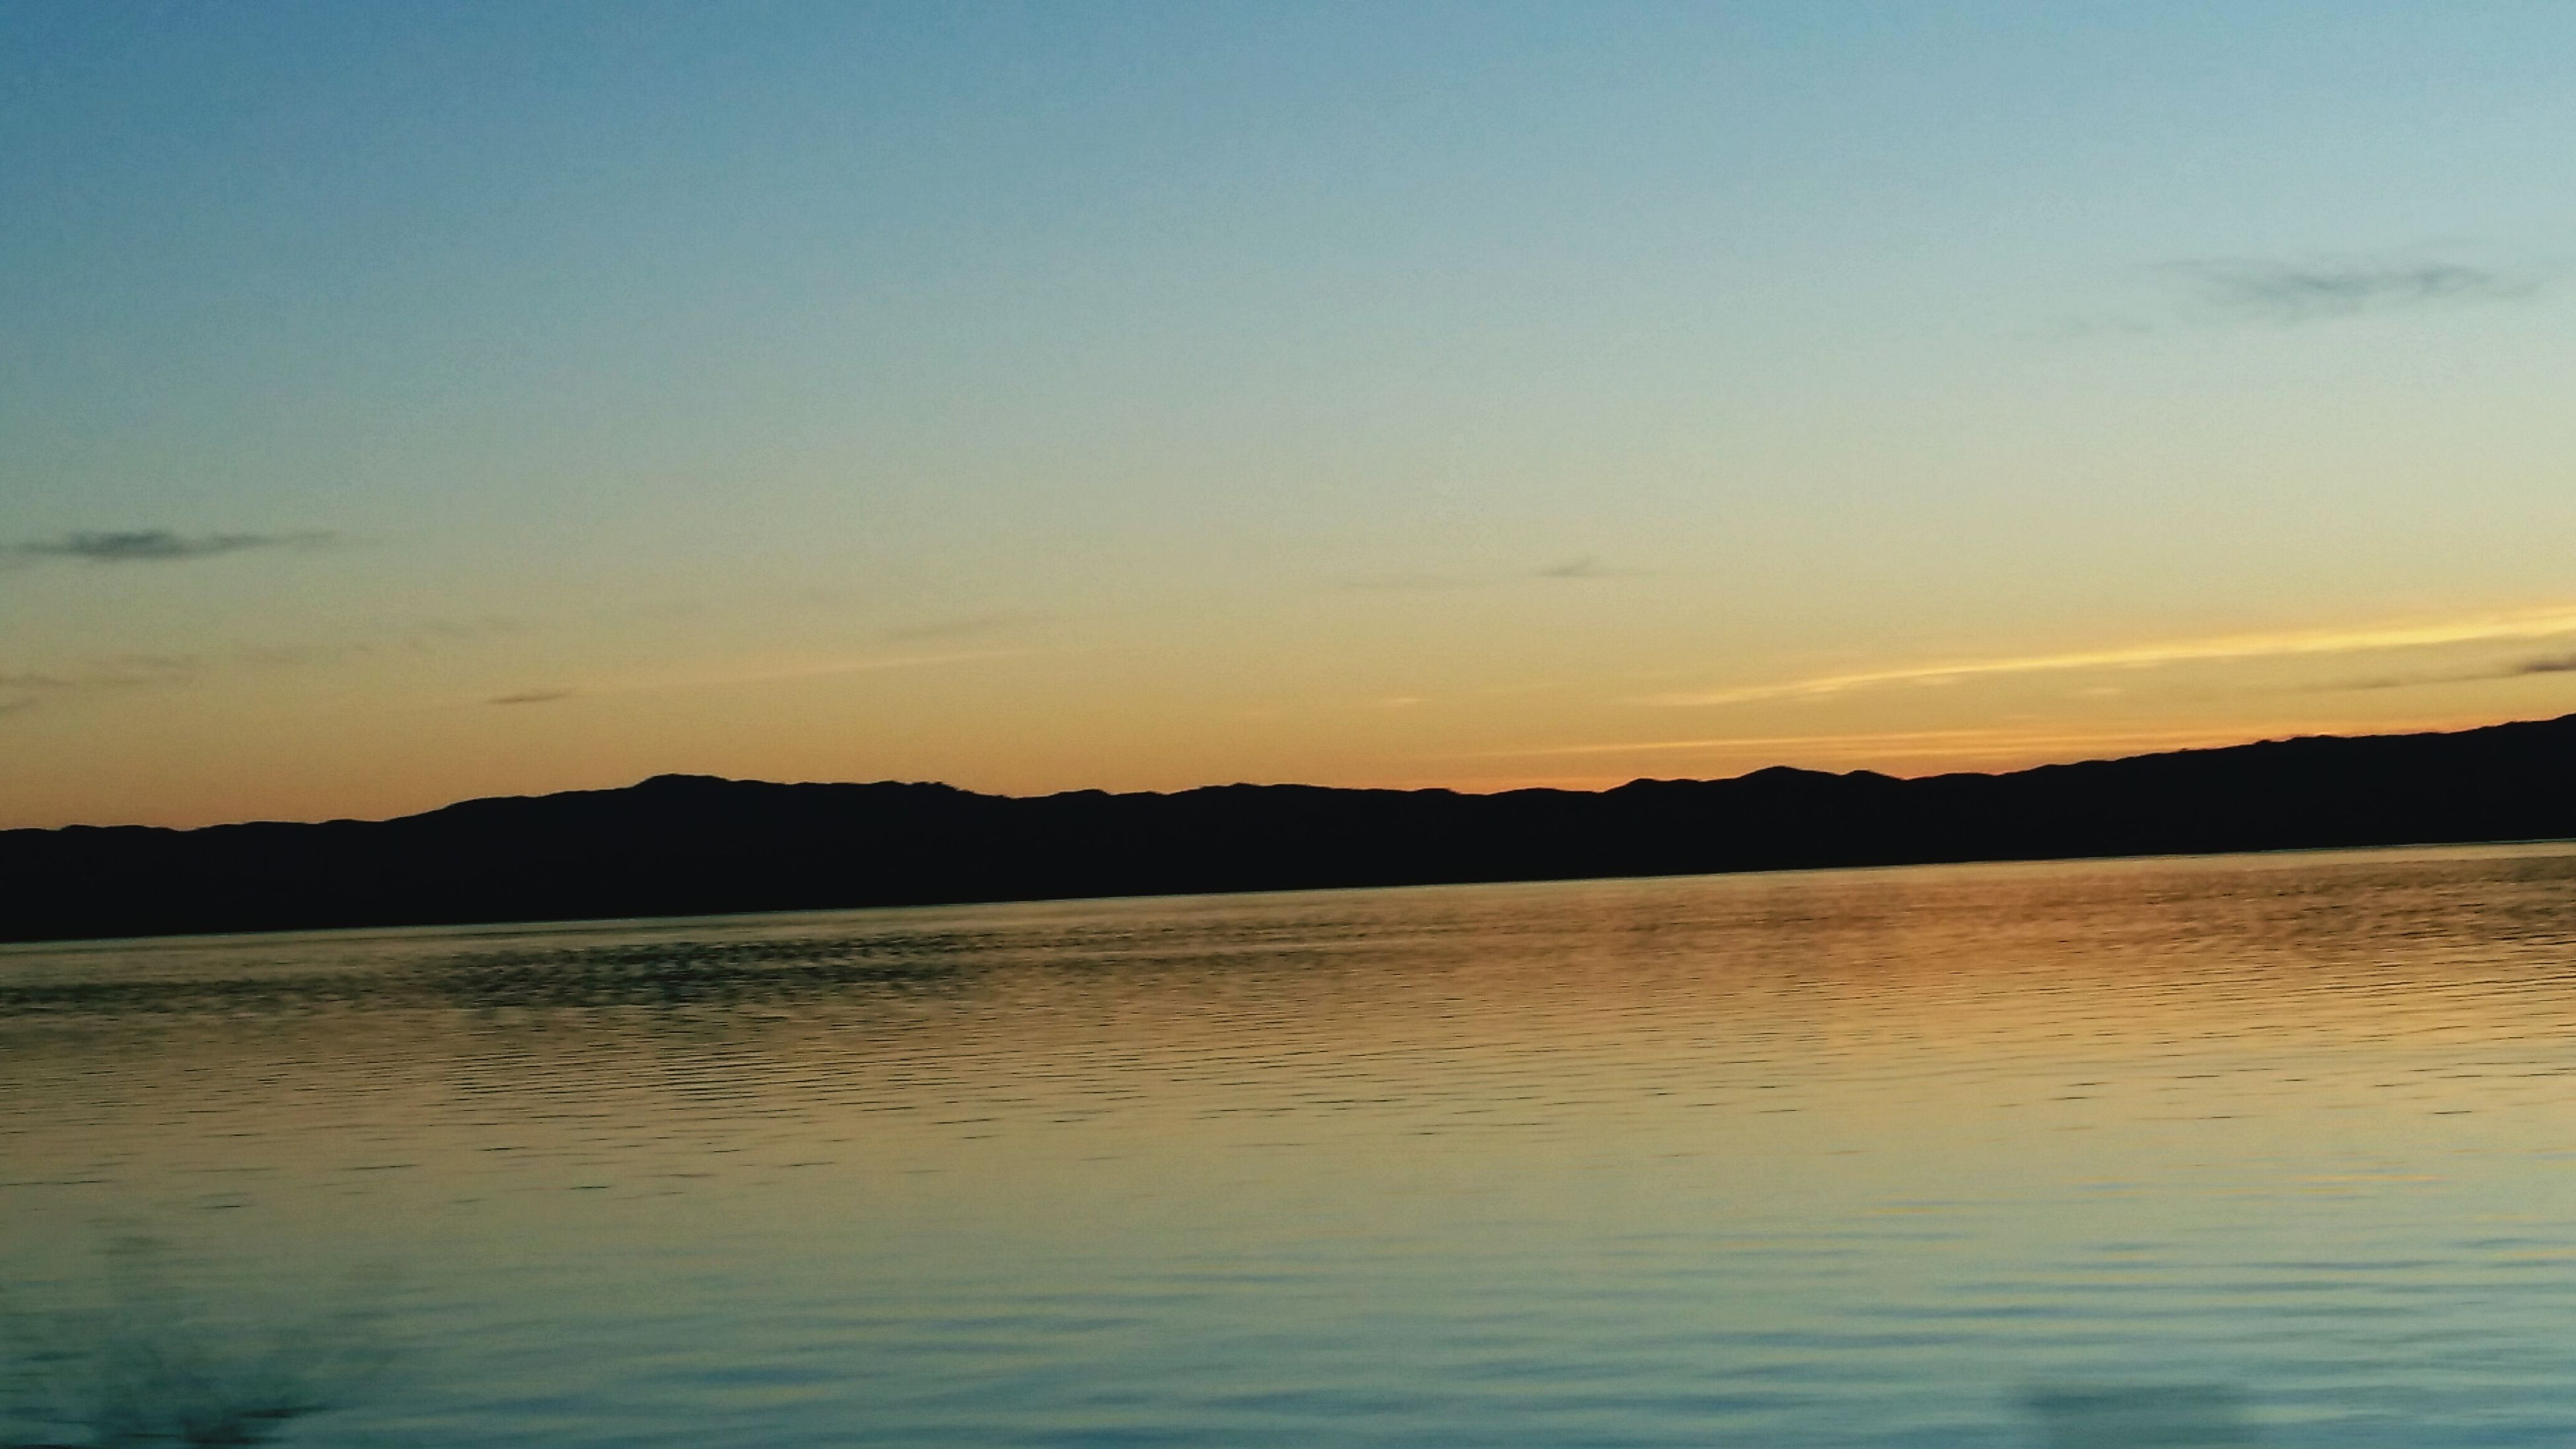 sunset, tranquil scene, water, scenics, tranquility, silhouette, beauty in nature, lake, sky, nature, idyllic, reflection, waterfront, copy space, dusk, orange color, non-urban scene, calm, outdoors, landscape